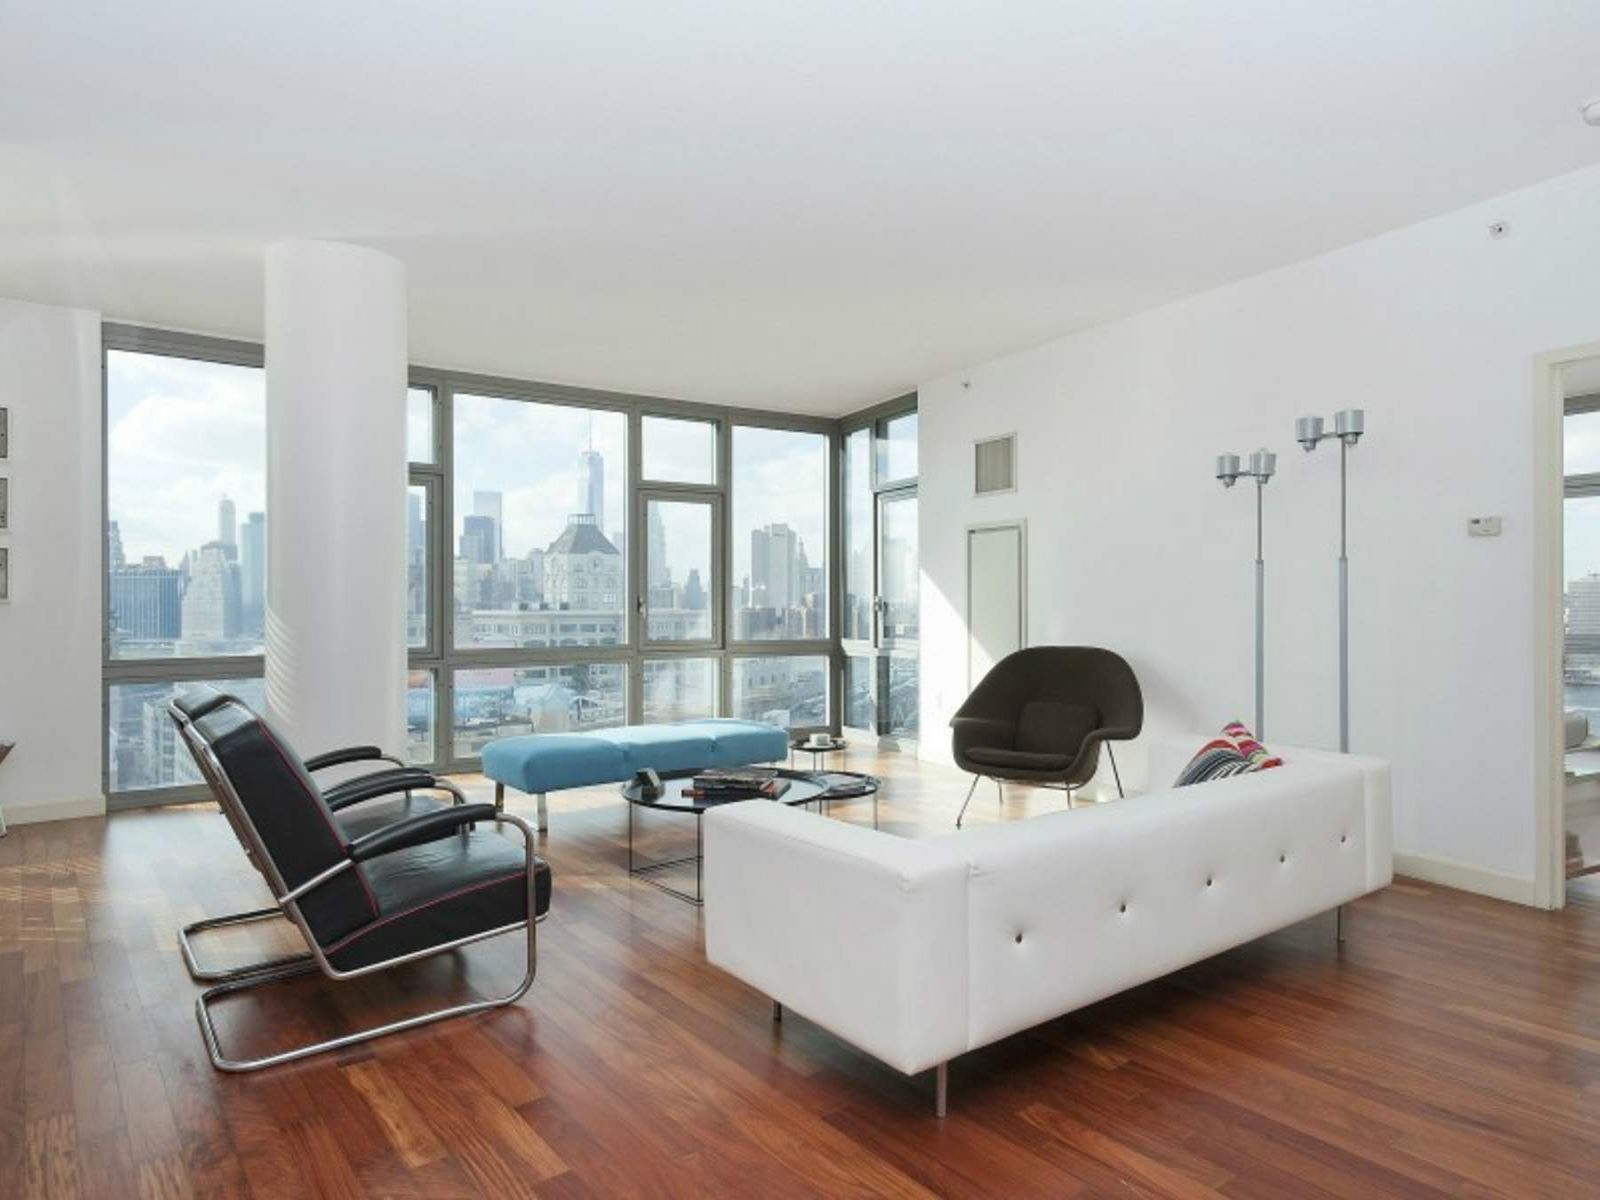 100 Jay Street at its Best, Brooklyn NY Condominium - New York City Real Estate